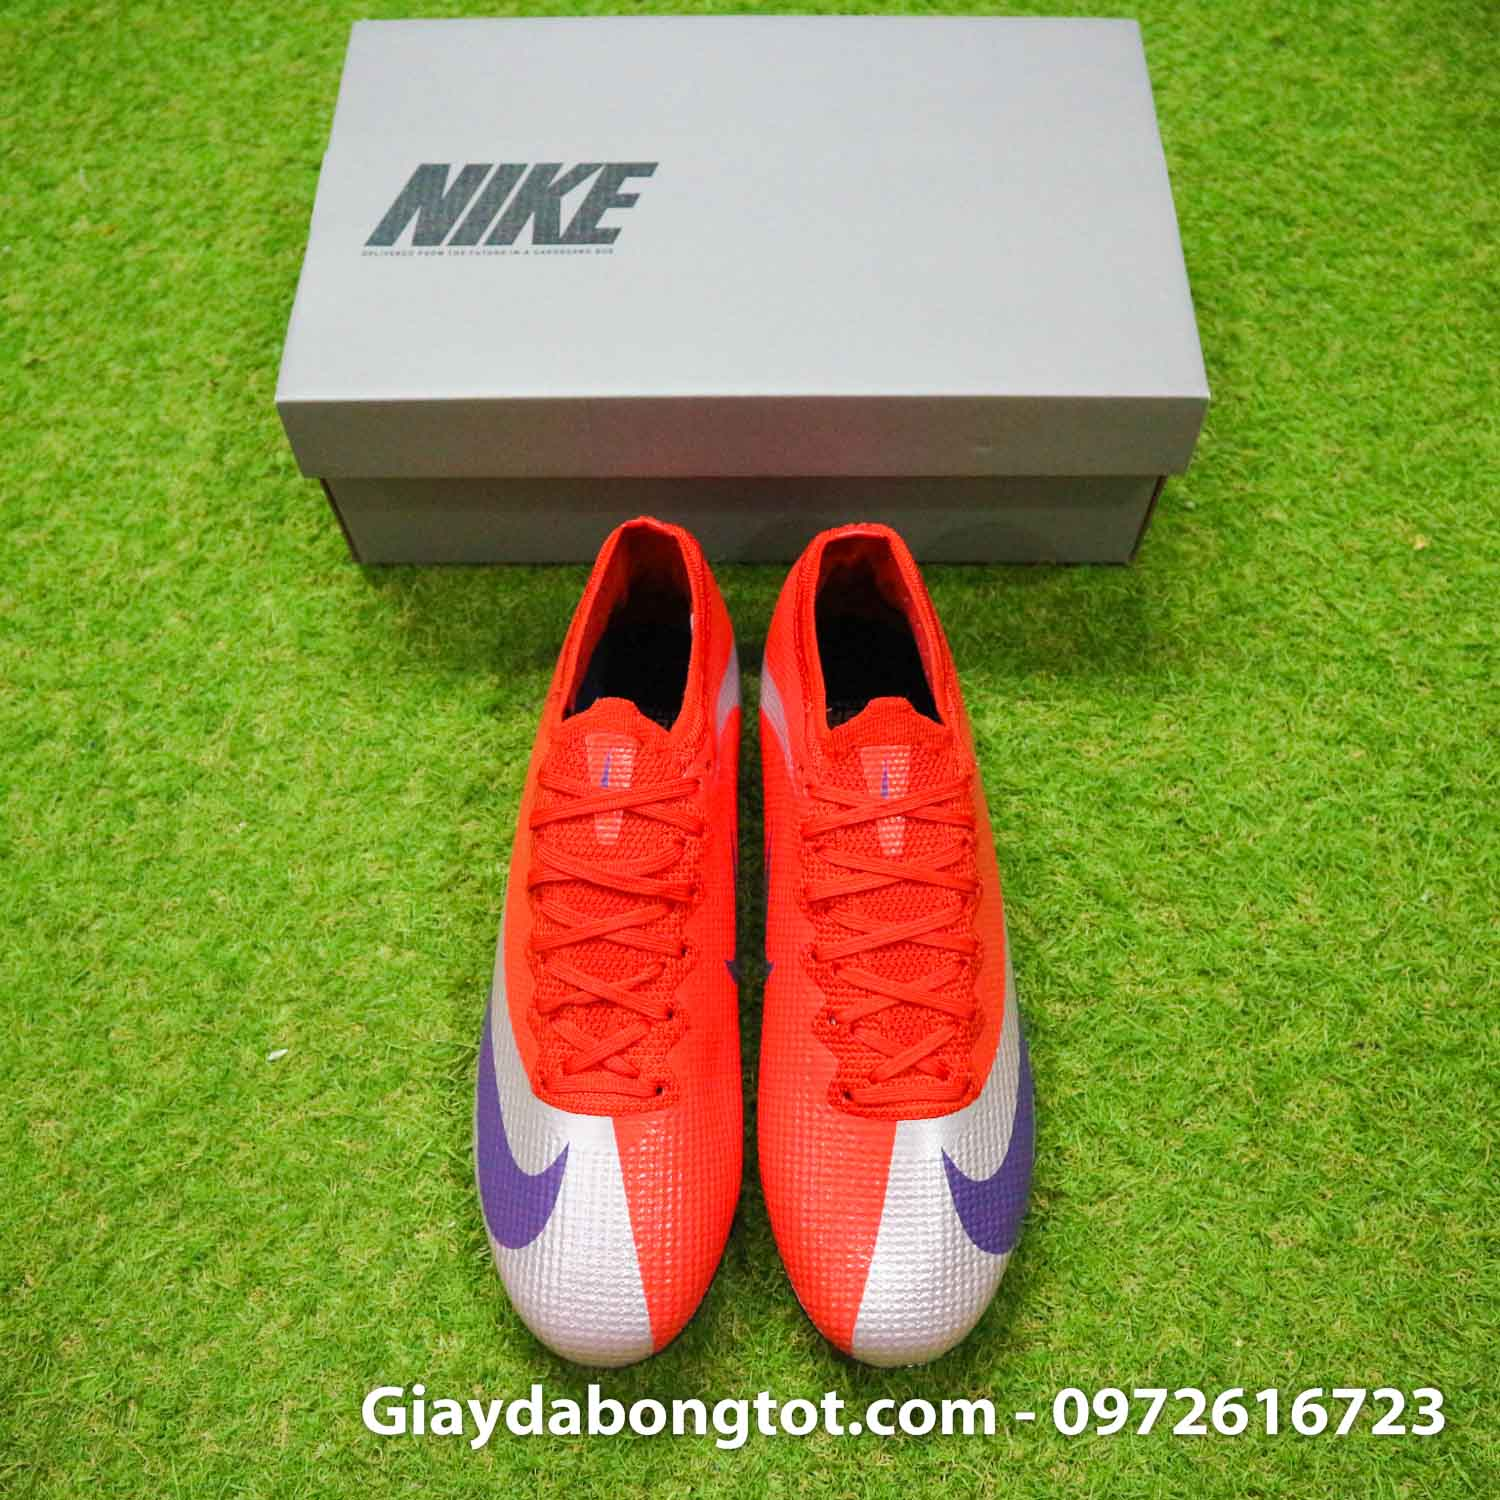 Giay bong da nike mercurial vapor 13 elite fg do bac future dna (8)